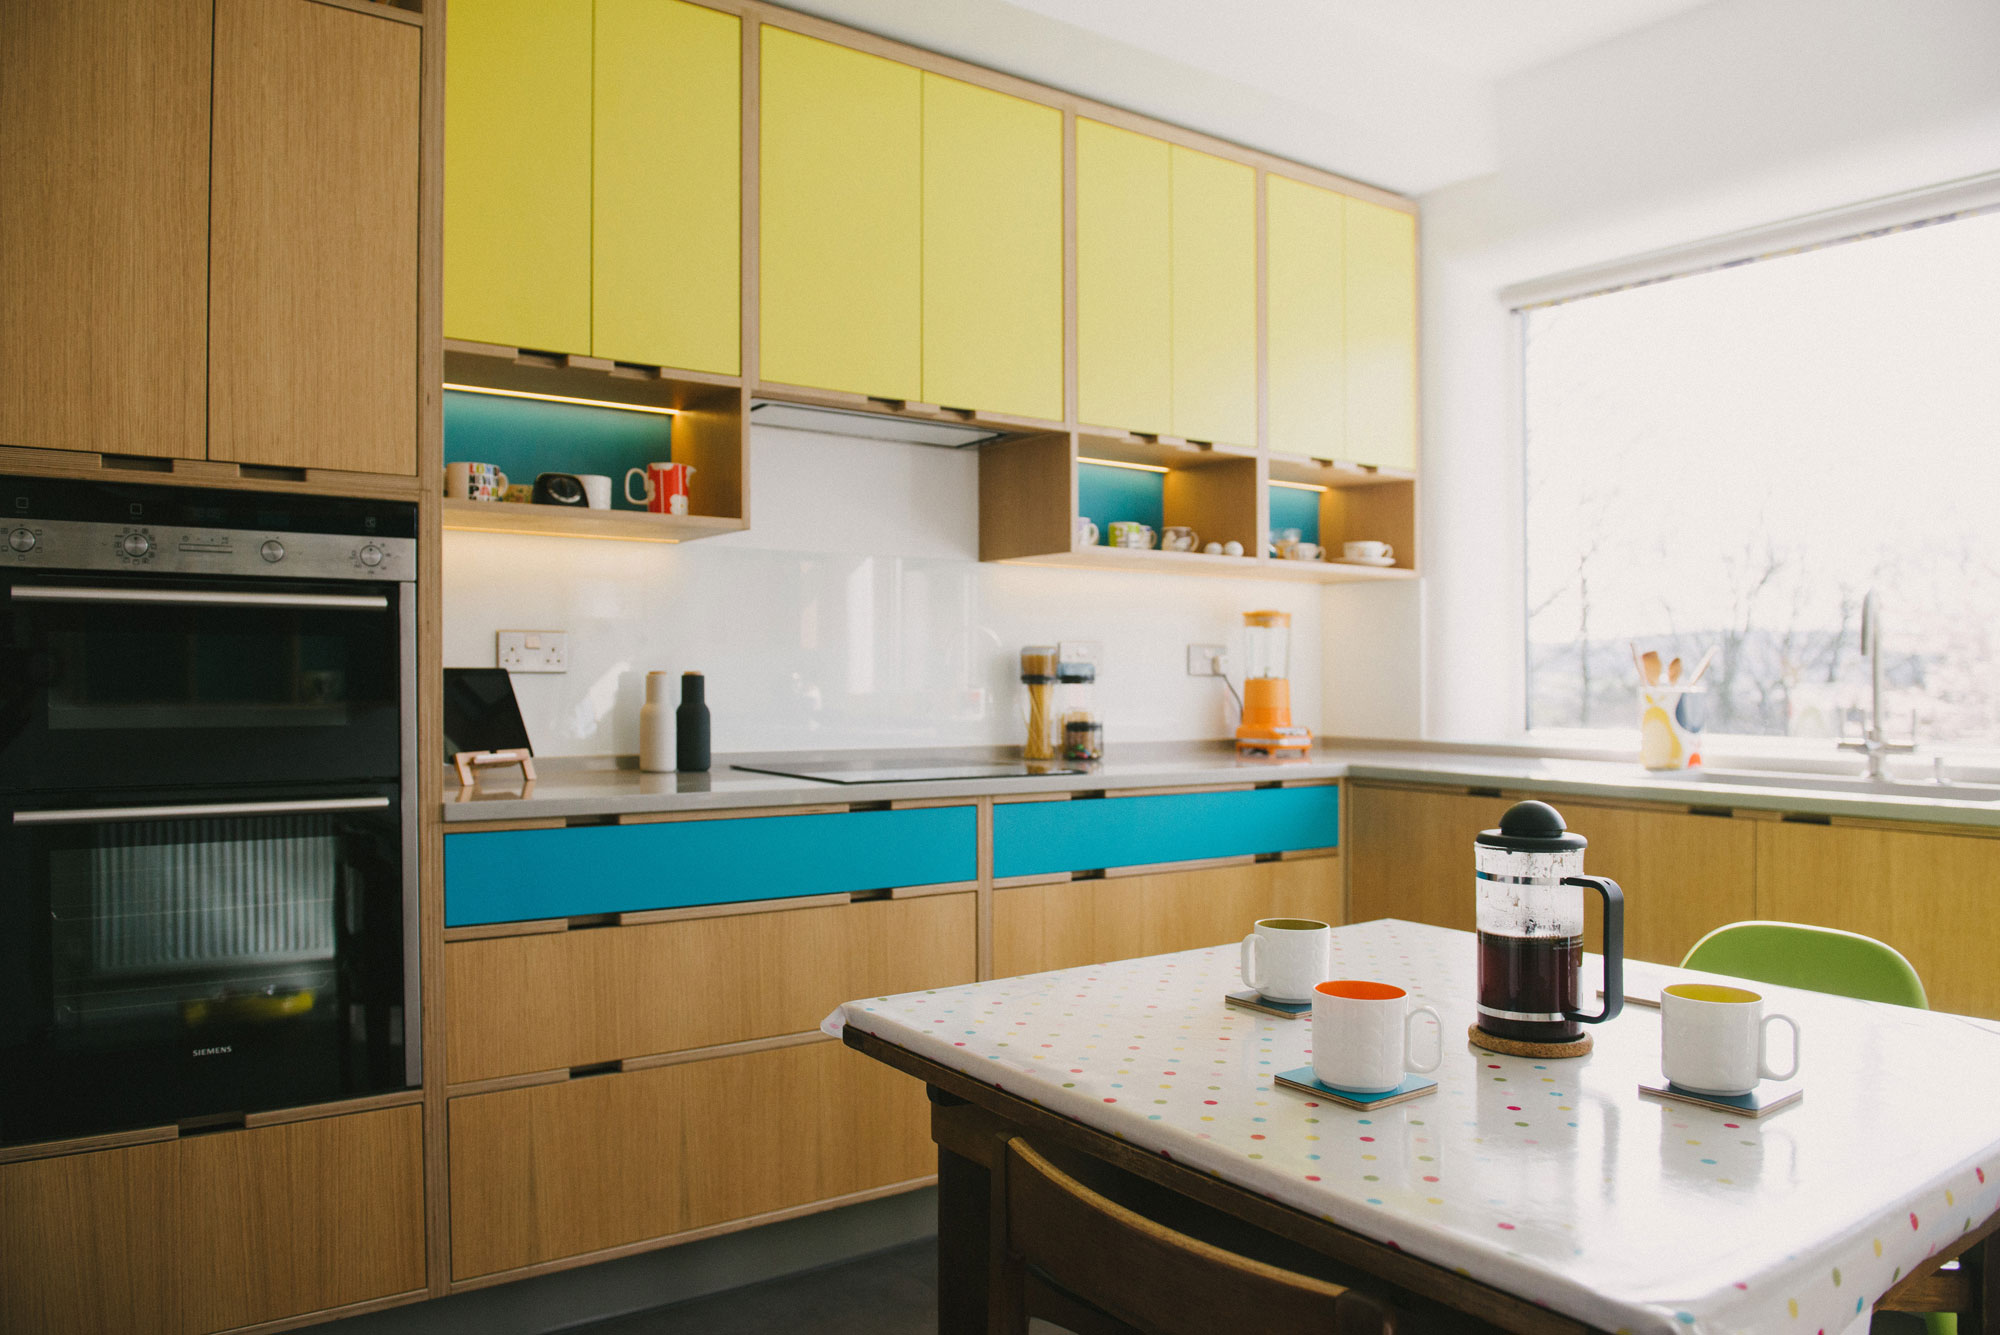 retro kitchen in yellow and blue